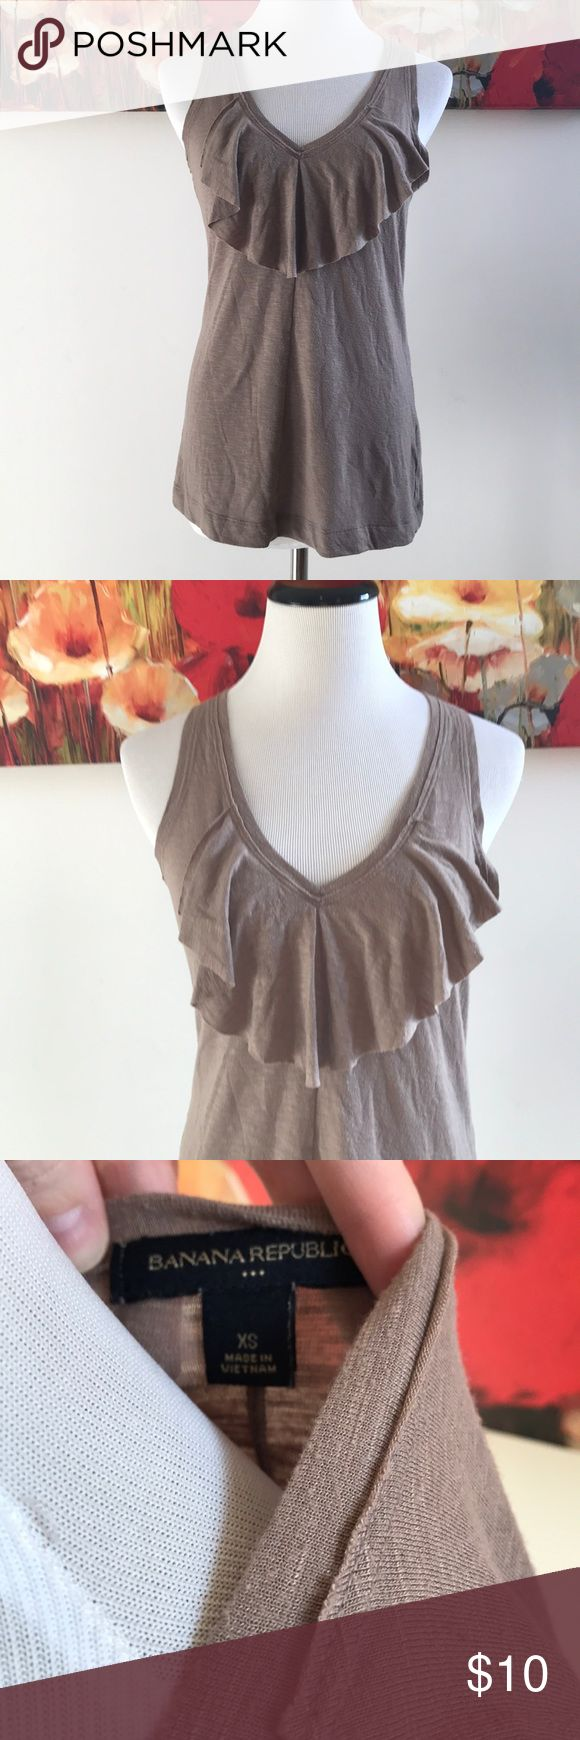 🎁3 for $20 Great Banana Republic Tank Brown banana Republic tank! Really great basic tank that can be dressed up or down. Not brand new, there is slight wear, but definitely a lot of life left! Banana Republic Tops Tank Tops